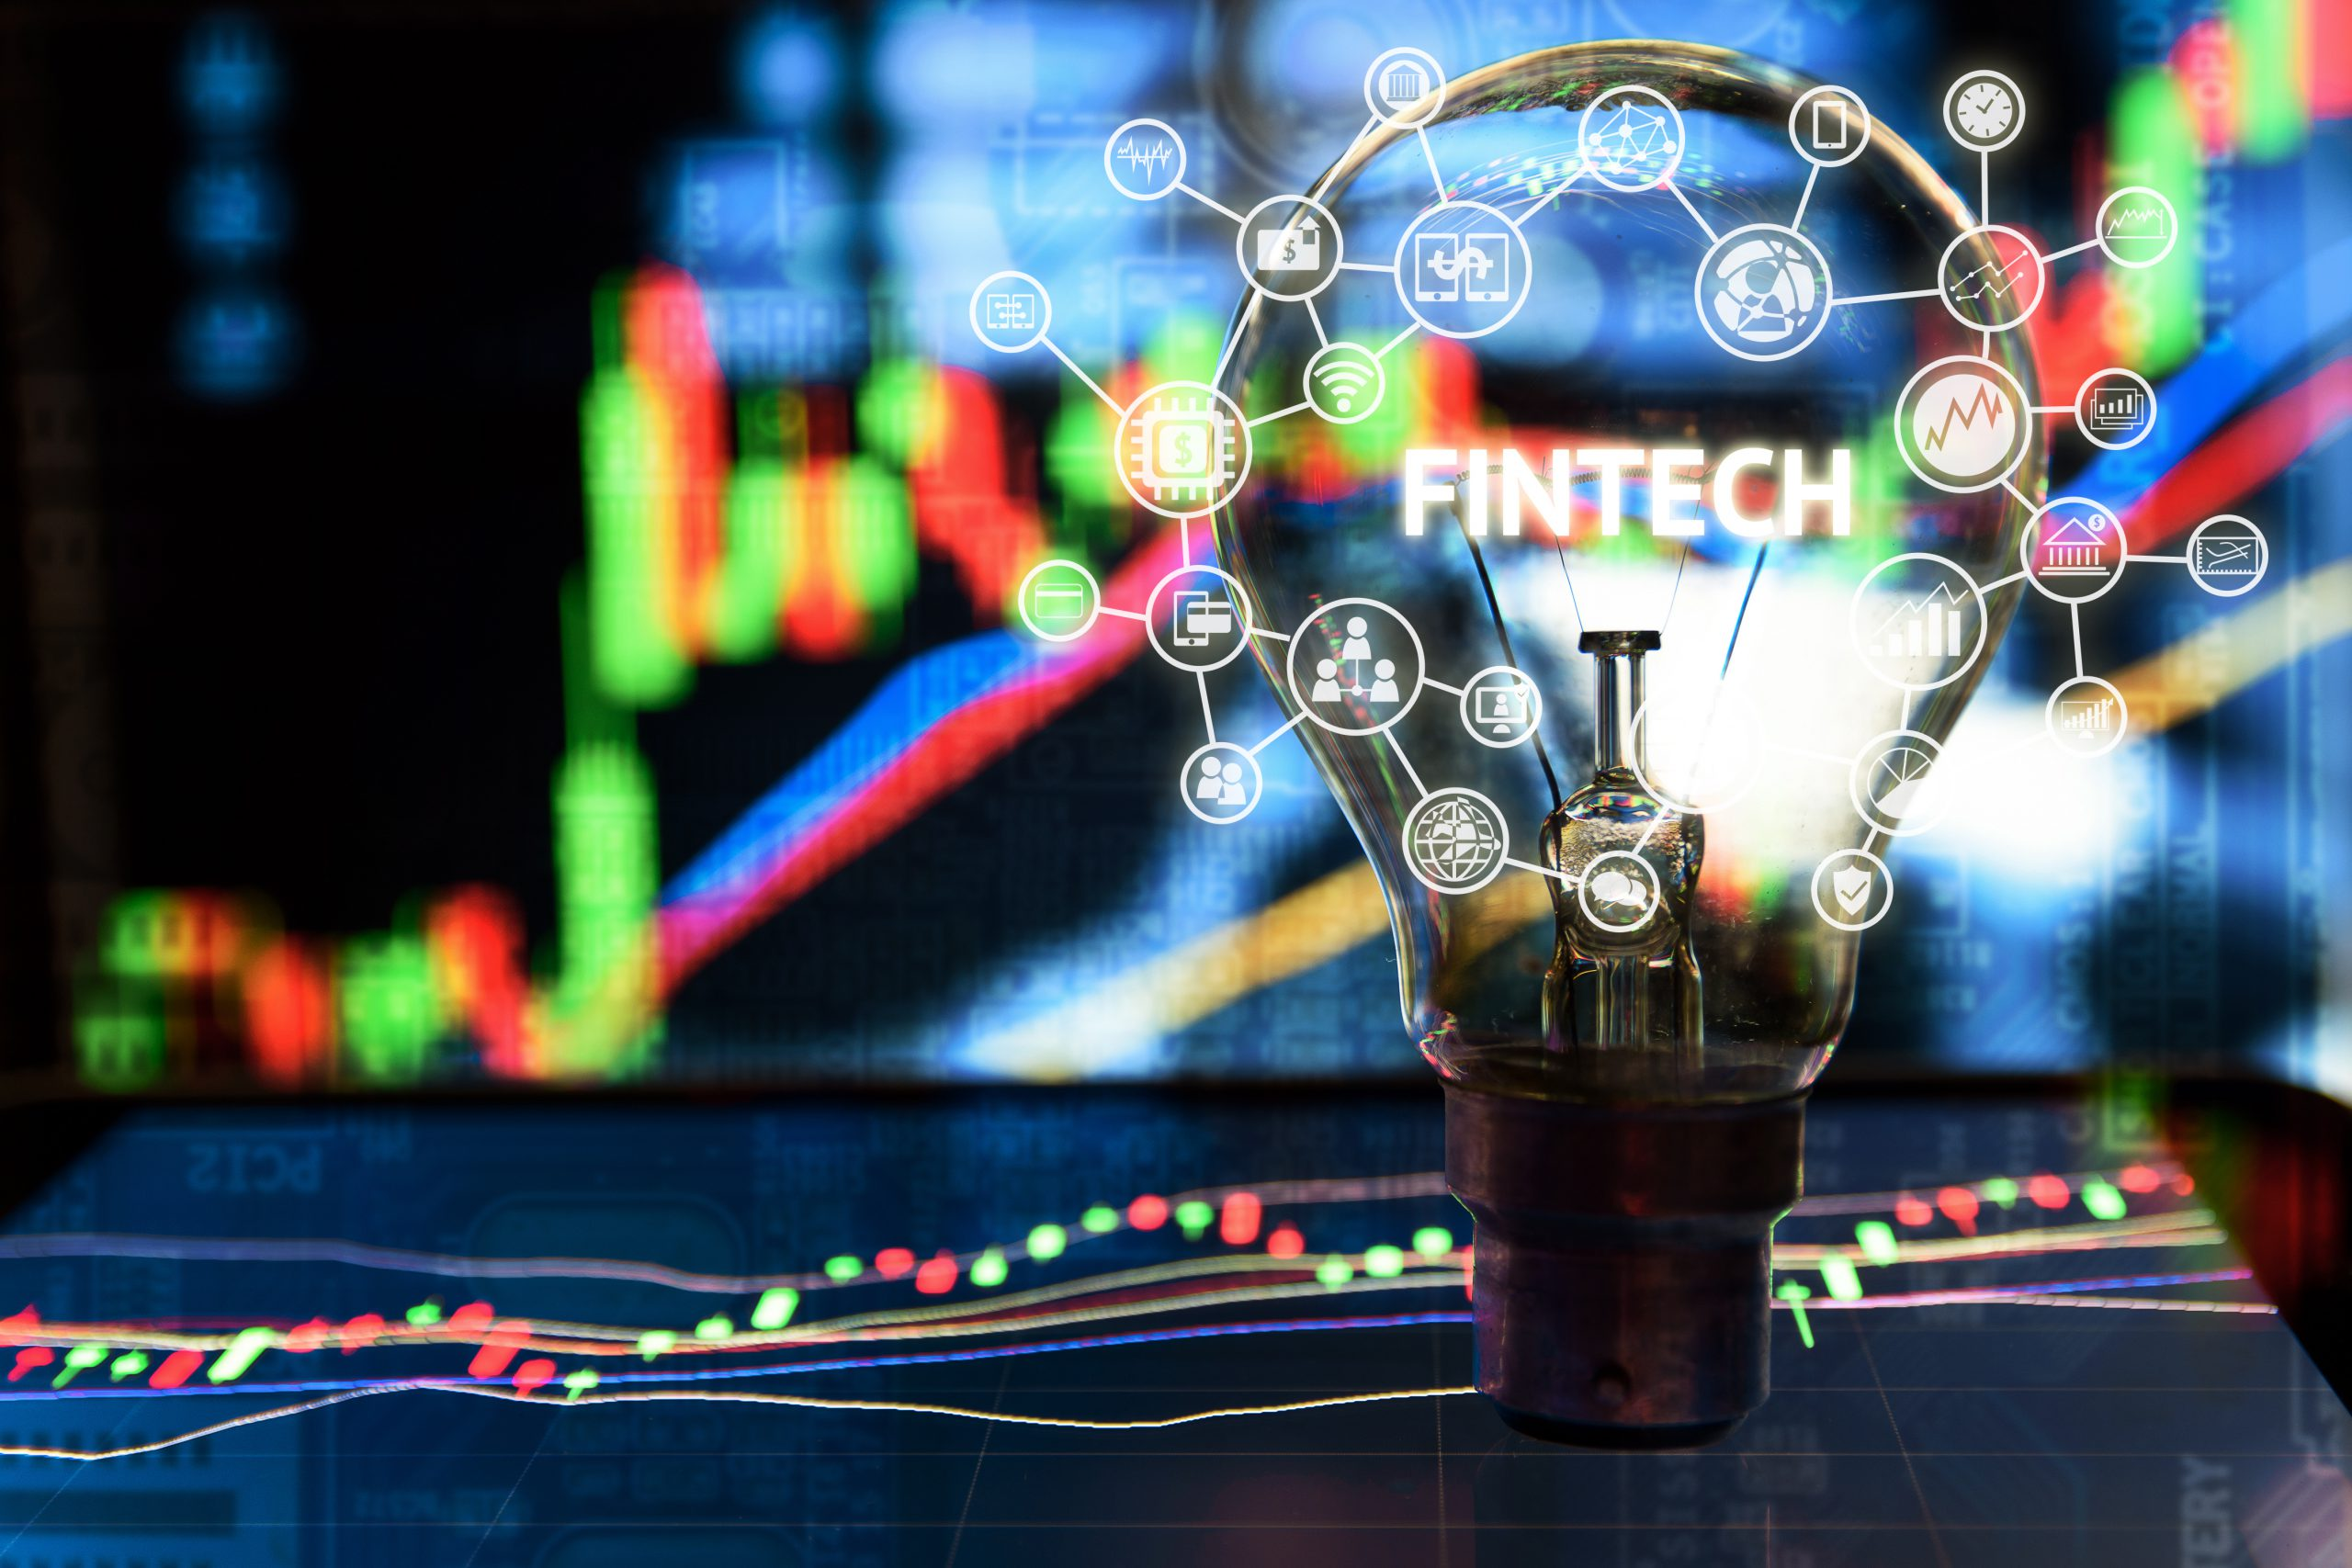 3 Fintech Stocks Wall Street Predicts Will Surge by More Than 60%